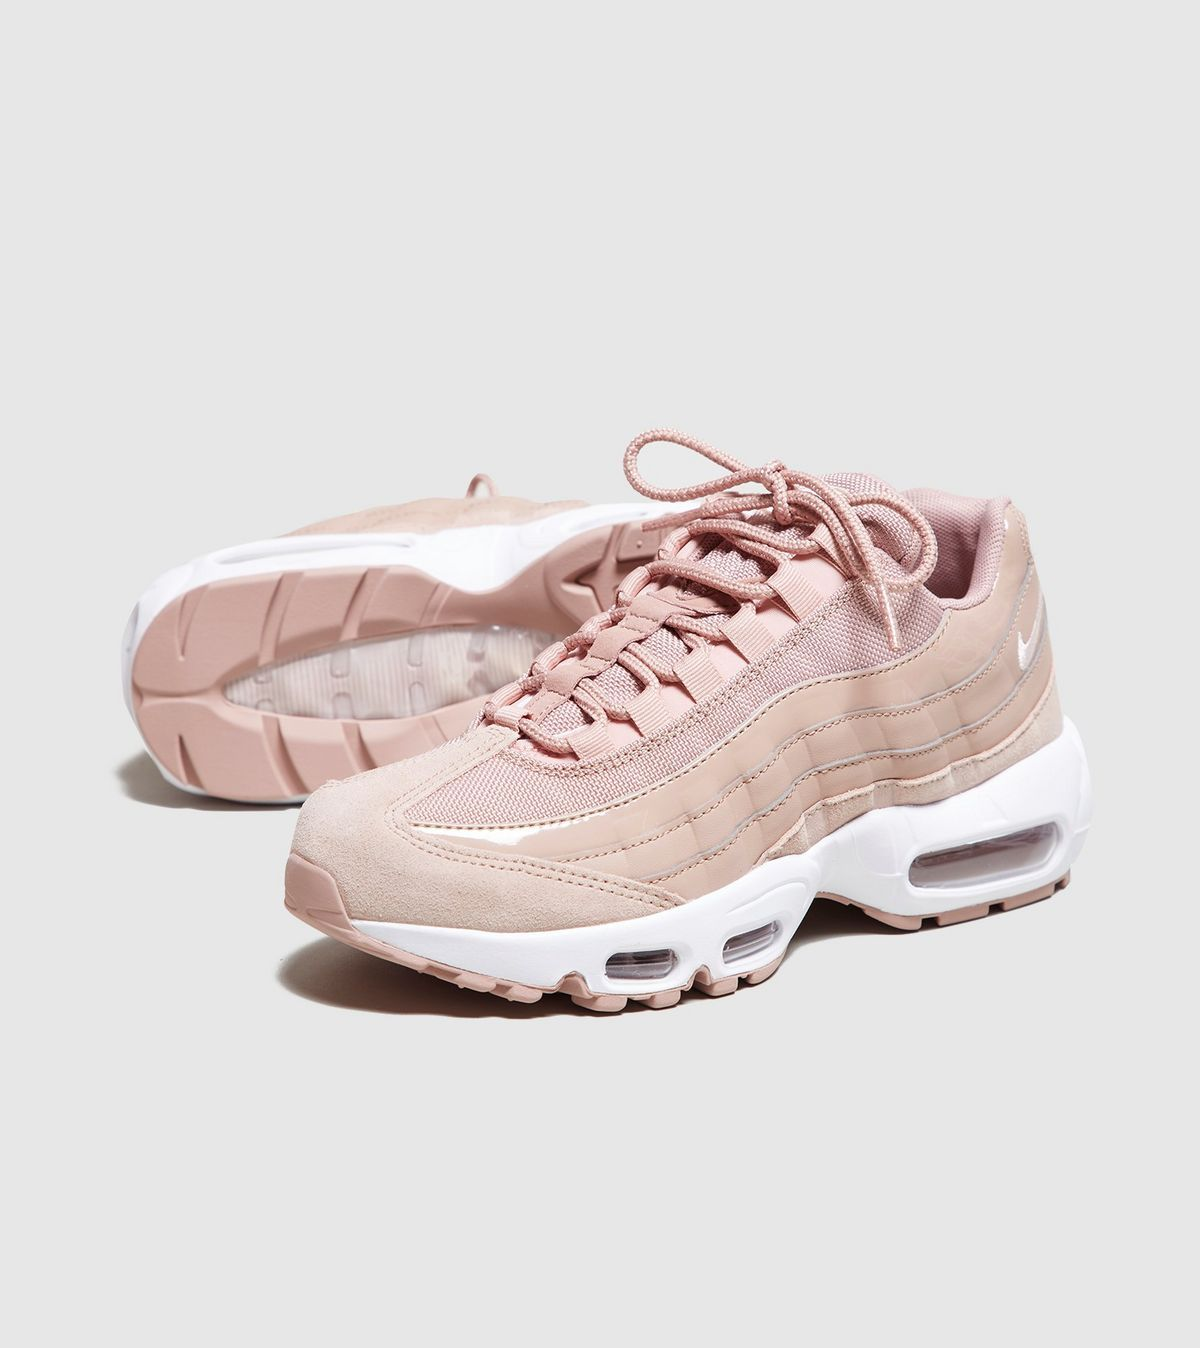 nike air max 95 frauen rose